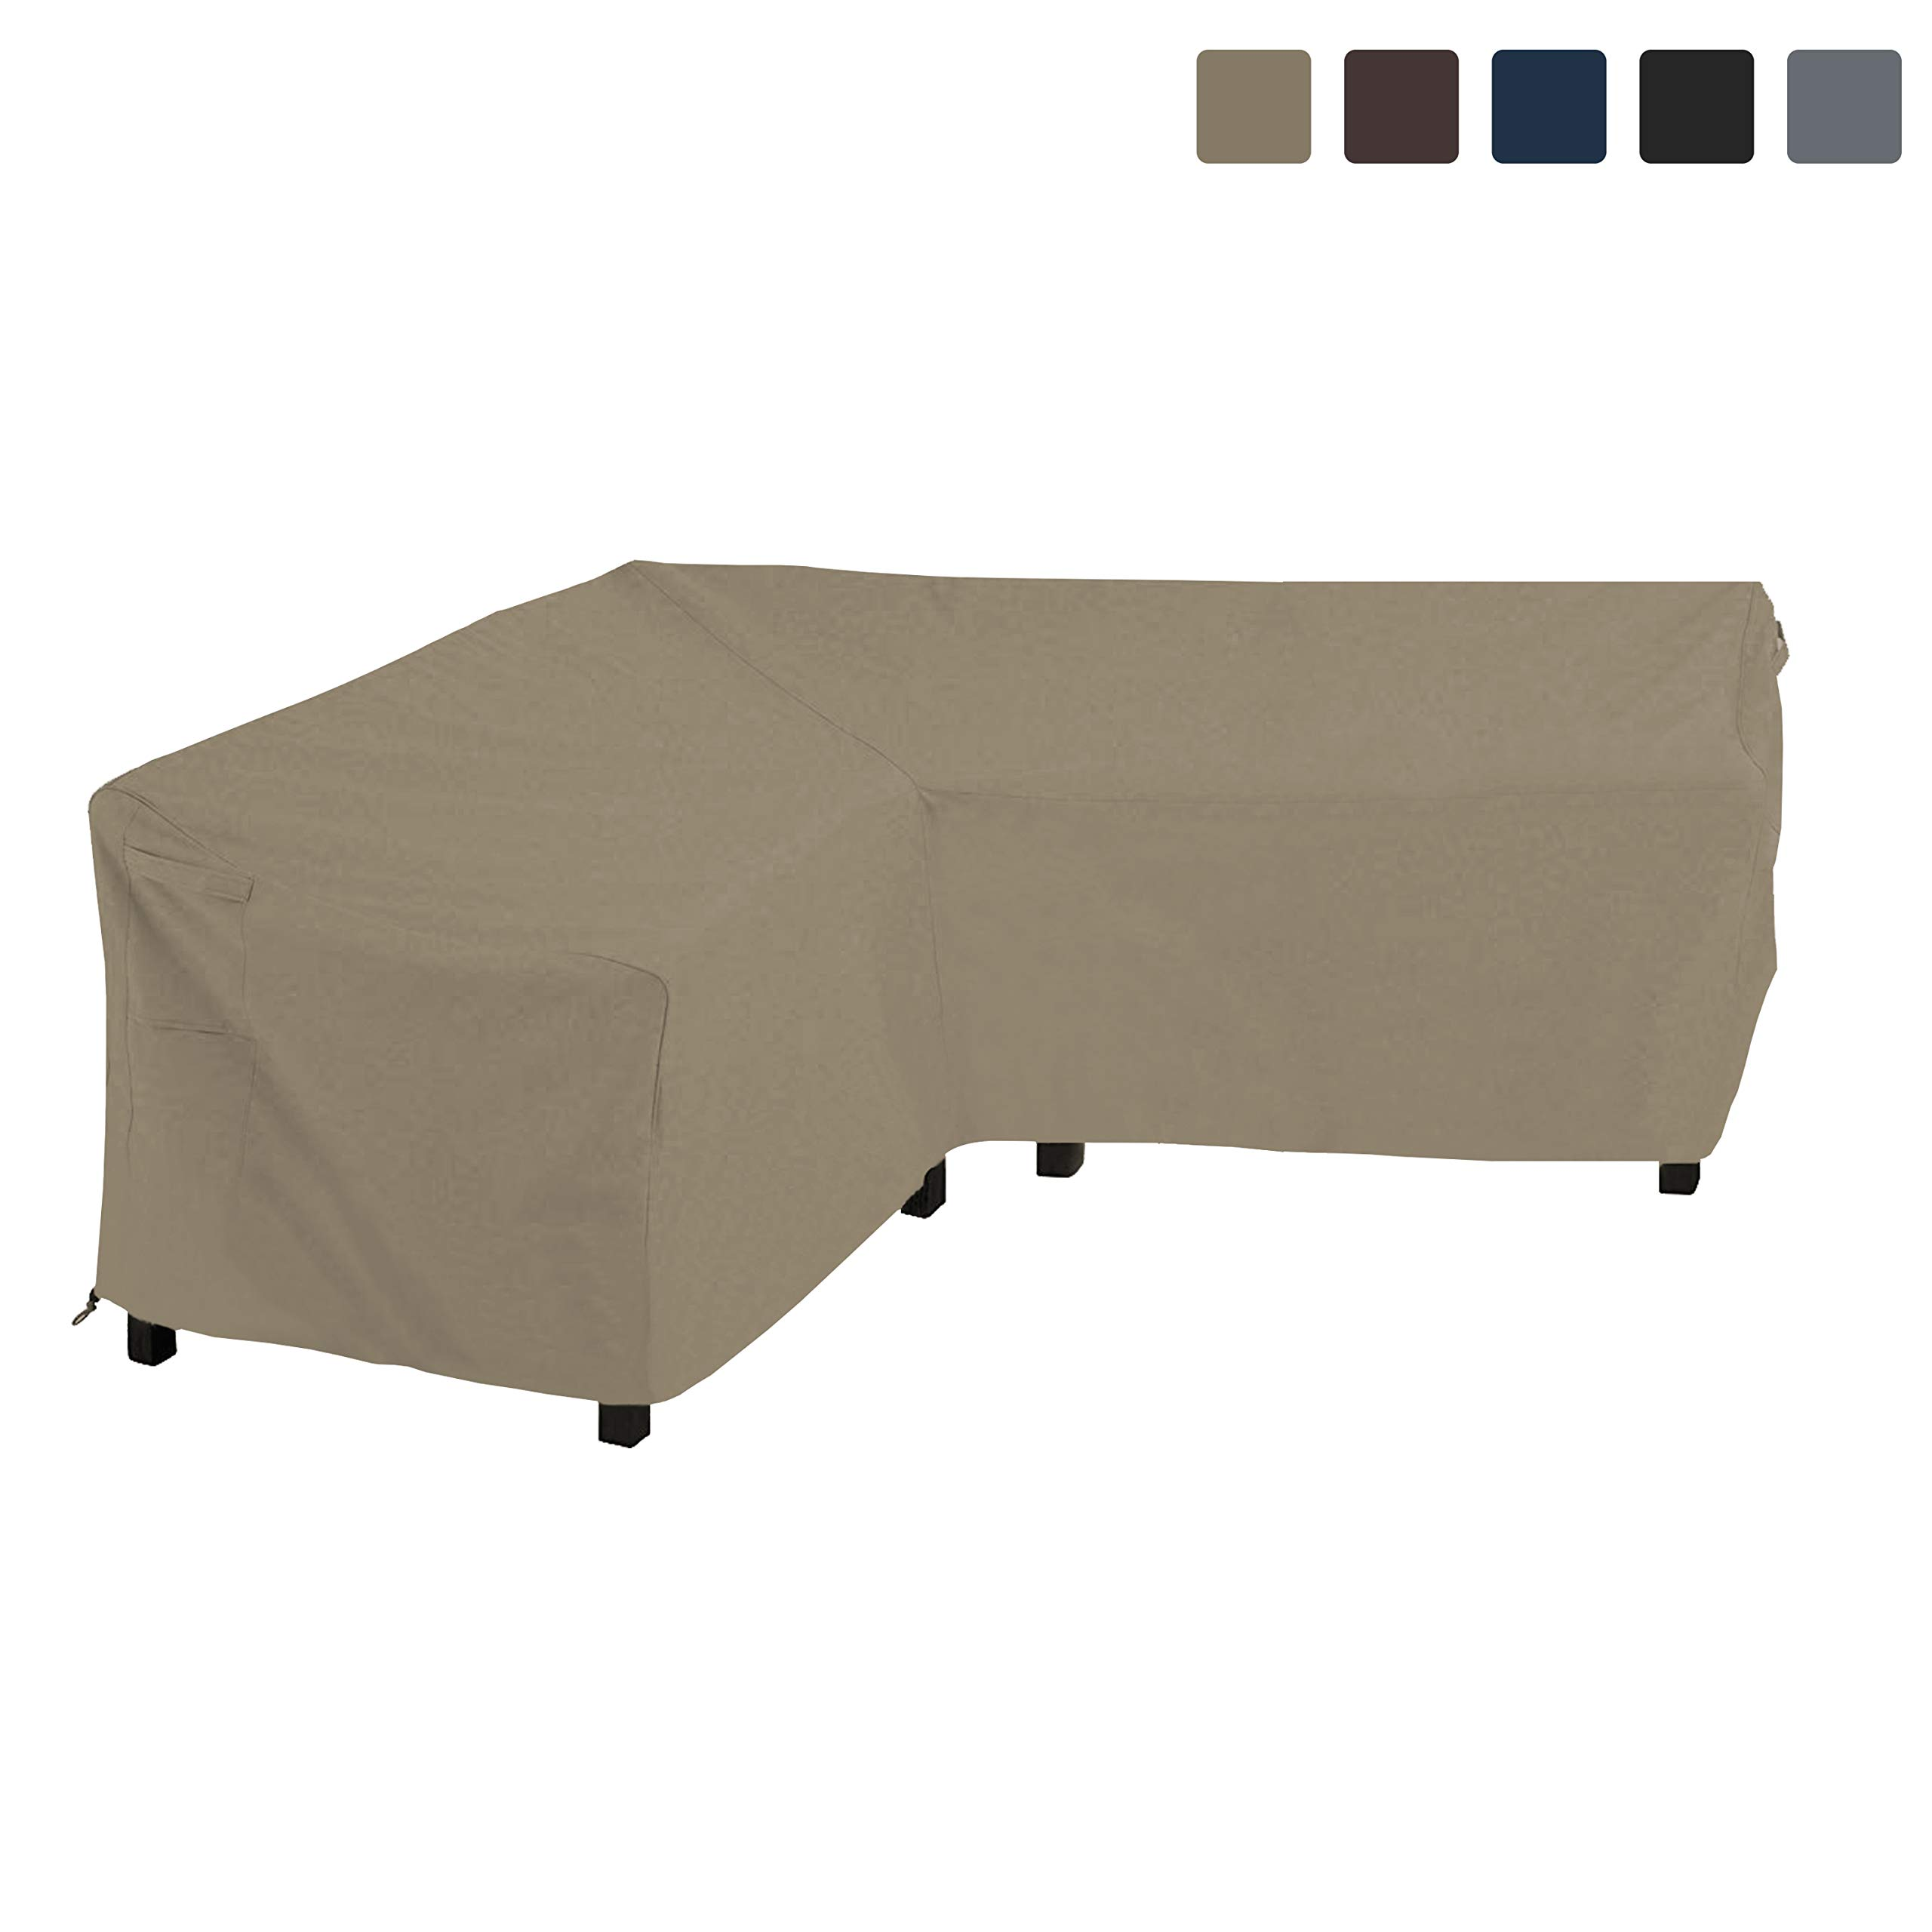 COVERS & ALL Patio Sectional Sofa Cover 12 Oz Waterproof - 100% UV & Weather Resistant PVC Coated 80'' x 80'' x 35''D x 33'' H - L Shape Sofa Cover for Indoor/Outdoor (V Shape Sofa, Beige)